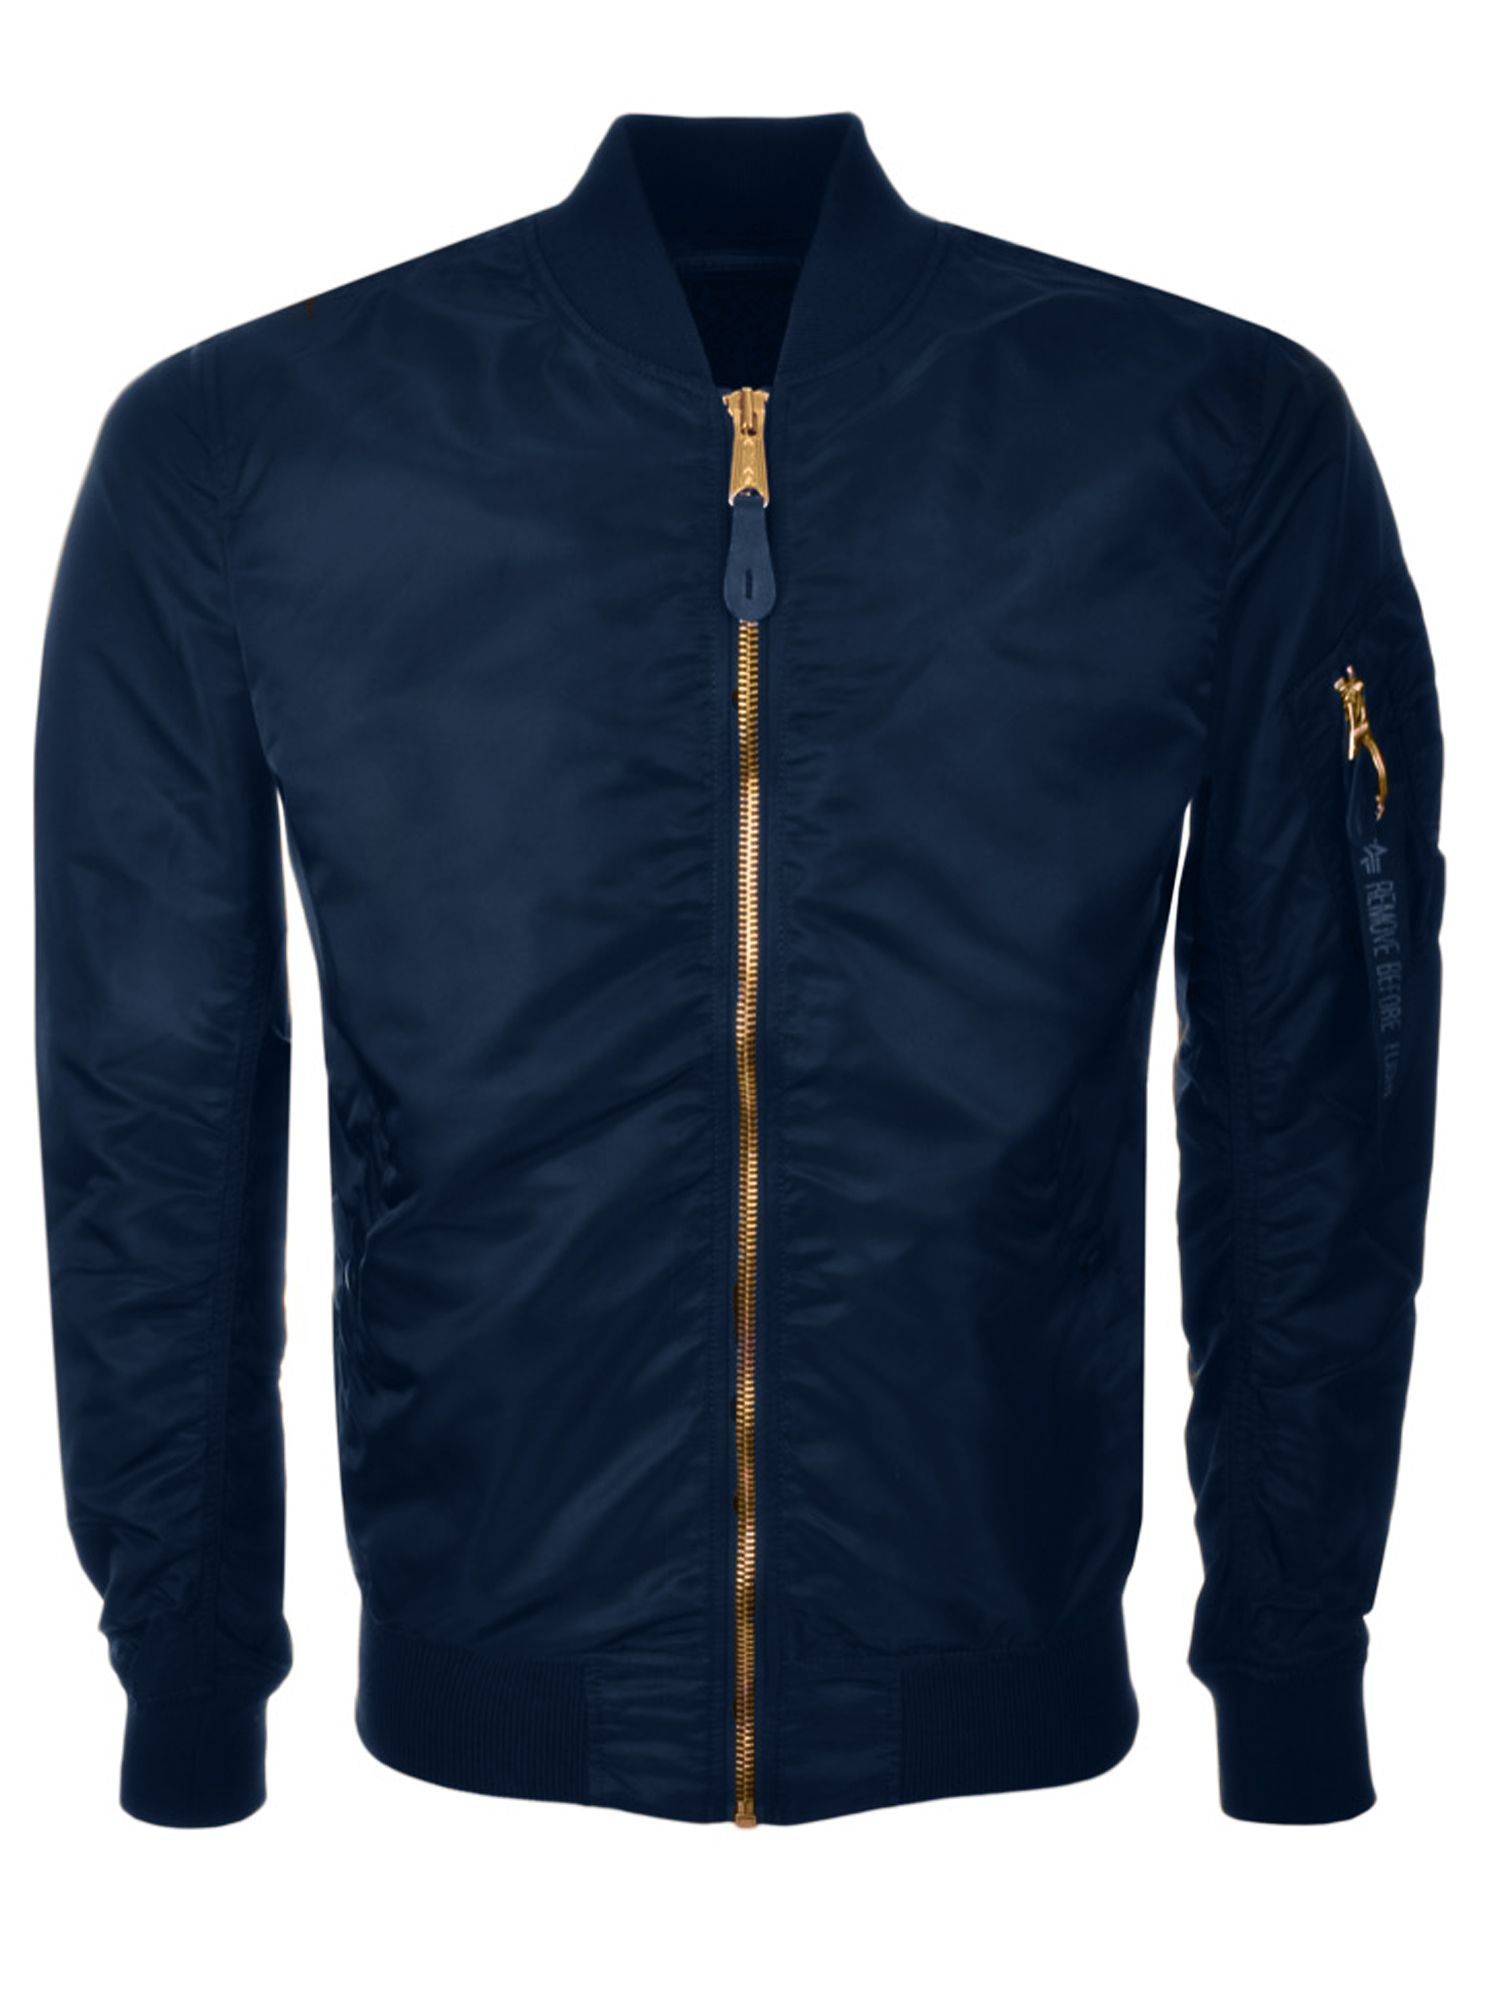 Alpha Industries Men's Alpha Industries Ma-1 vf lw jacket, Navy